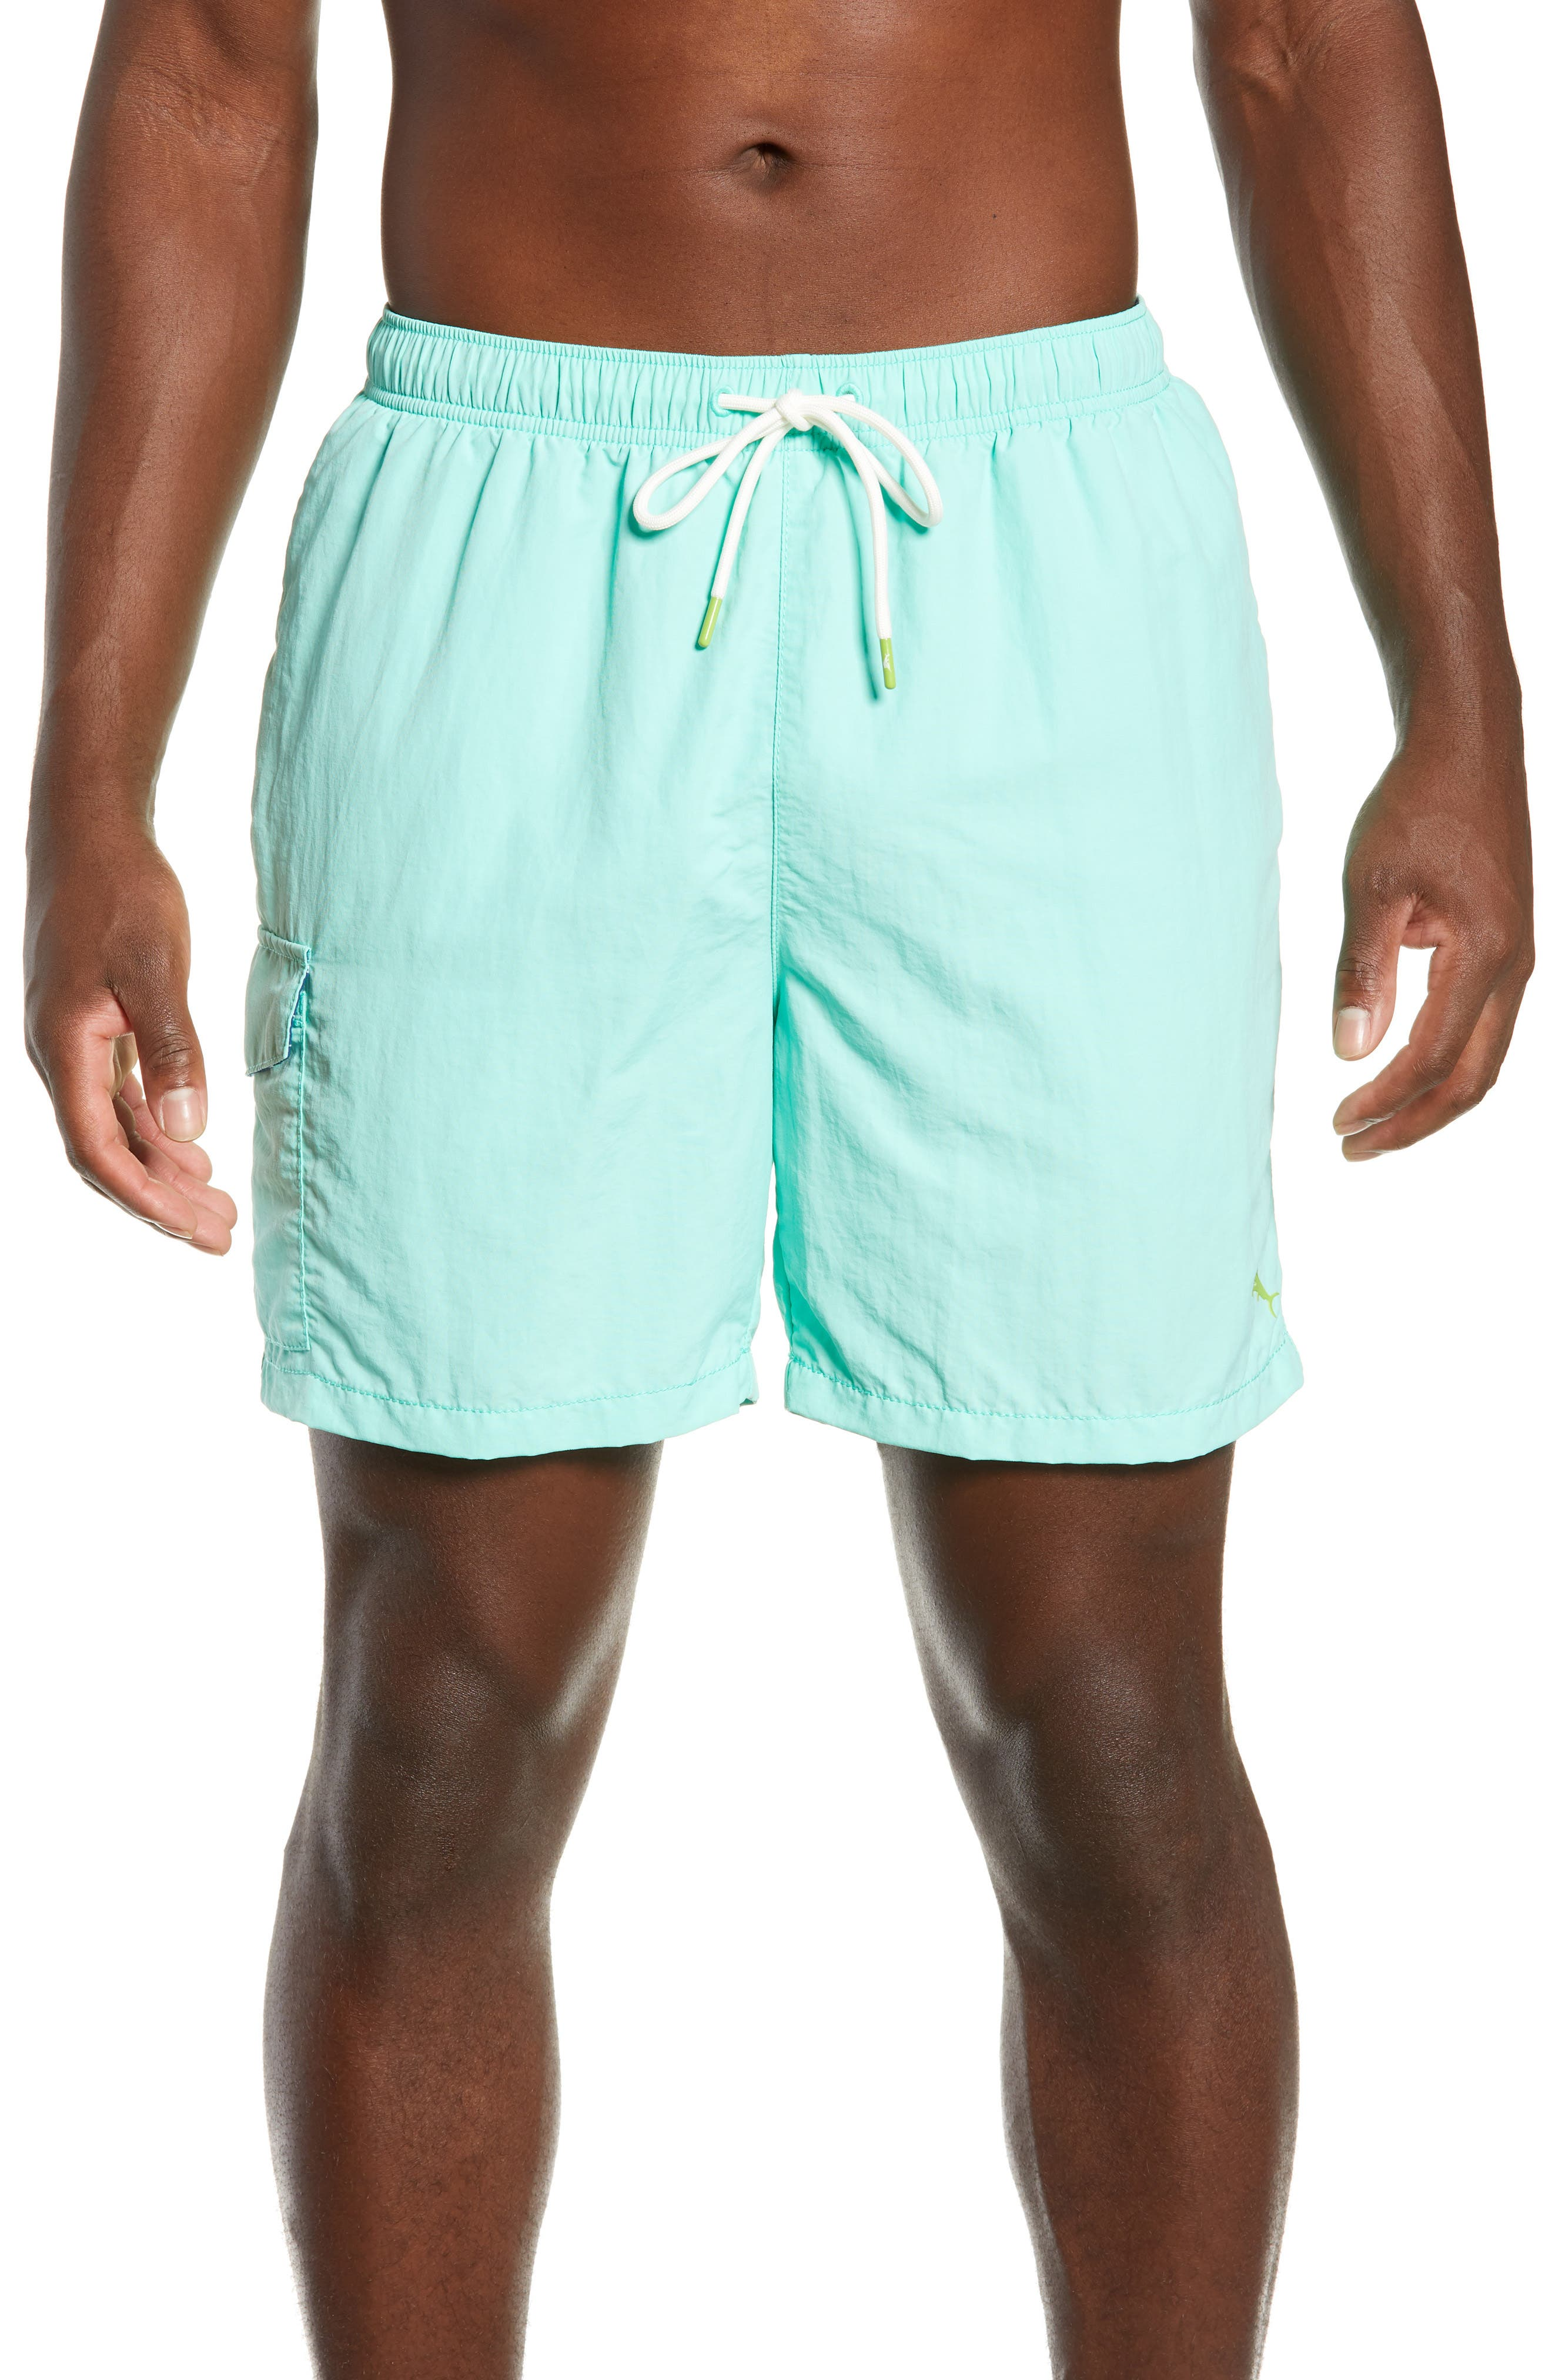 Naples Coast Swim Trunks,                             Main thumbnail 1, color,                             302